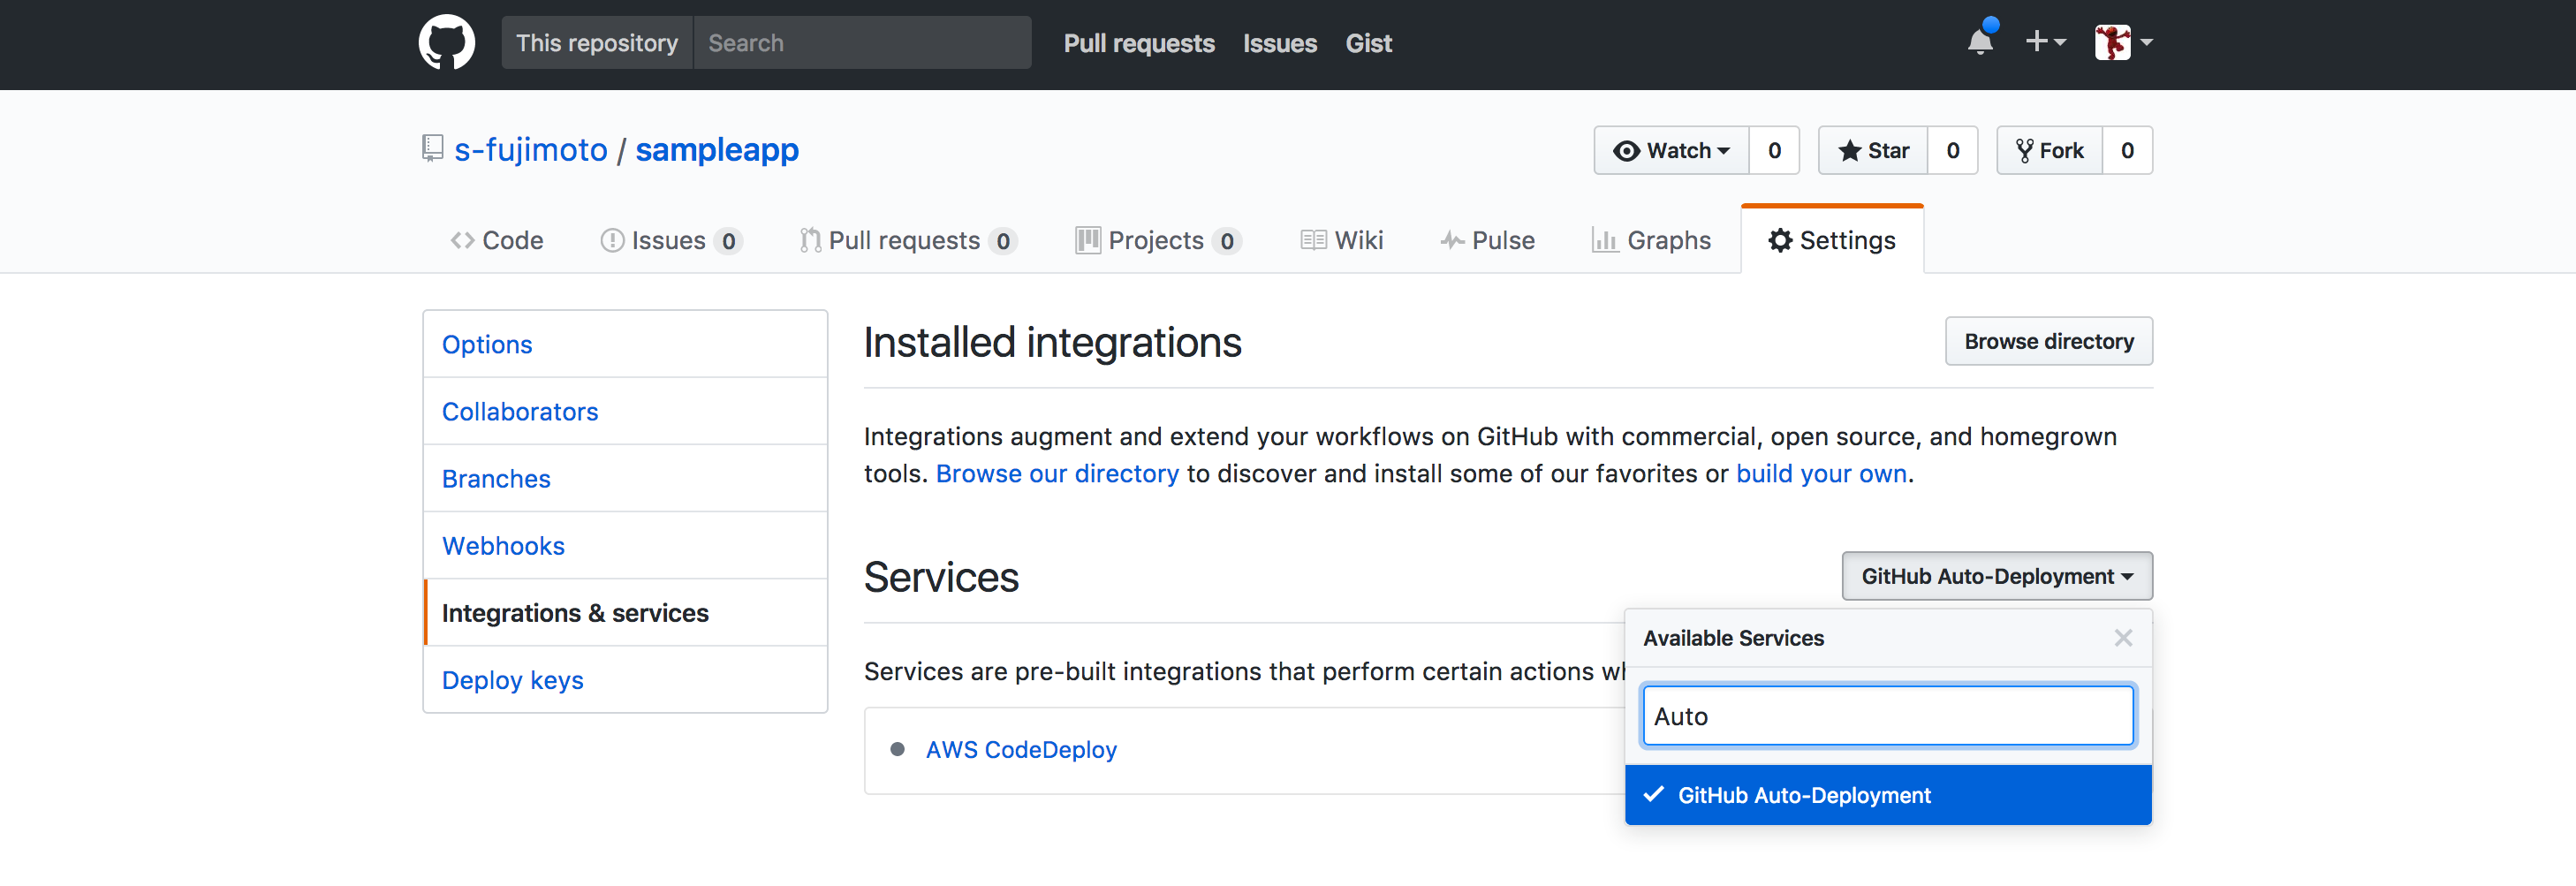 Integrations_and_services 2